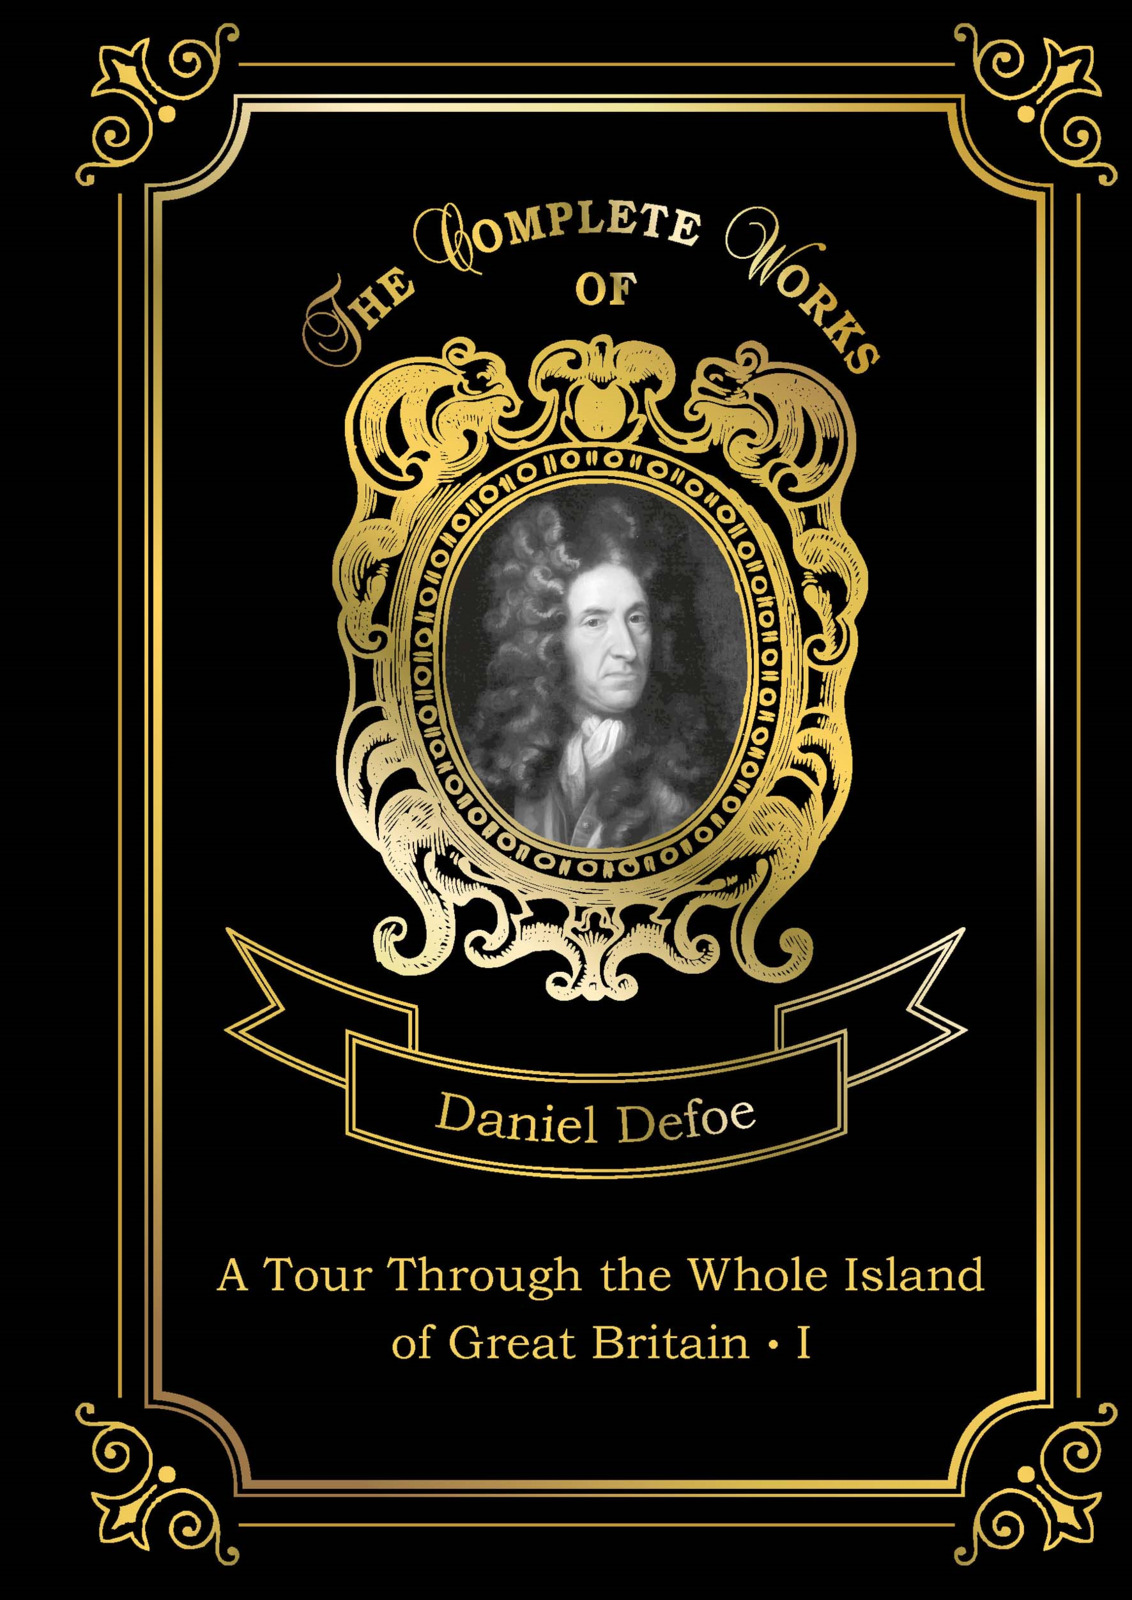 Defoe Daniel A Tour Through the Whole Island of Great Britain I даниэль дефо a tour through the whole island of great britain iii